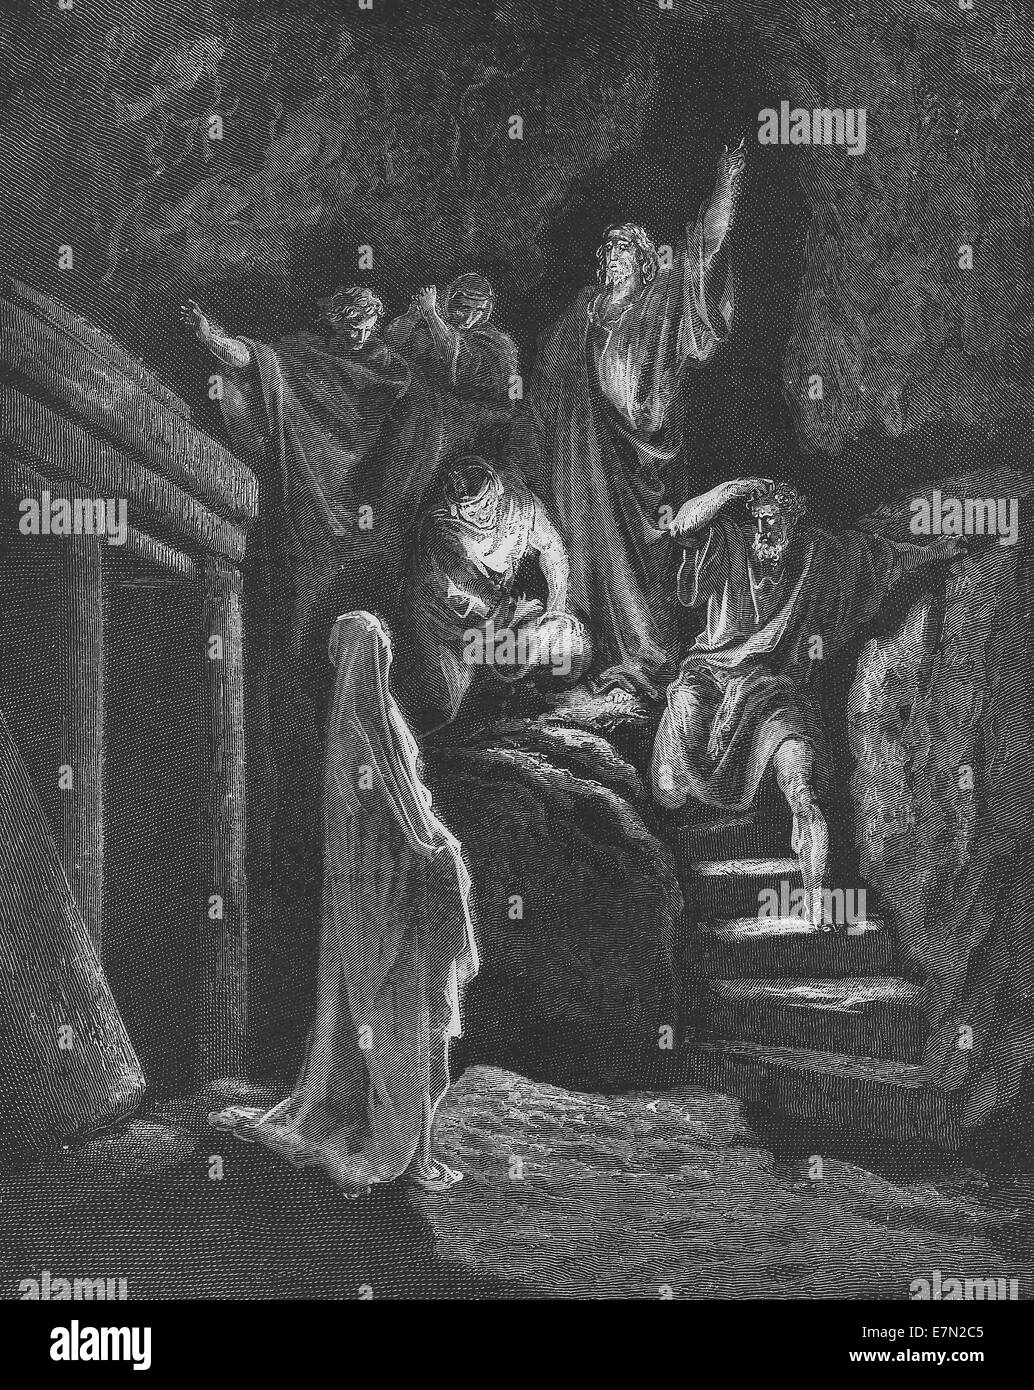 In Lazarus Tomb - New Testament story - Raising from the dead - Stock Image